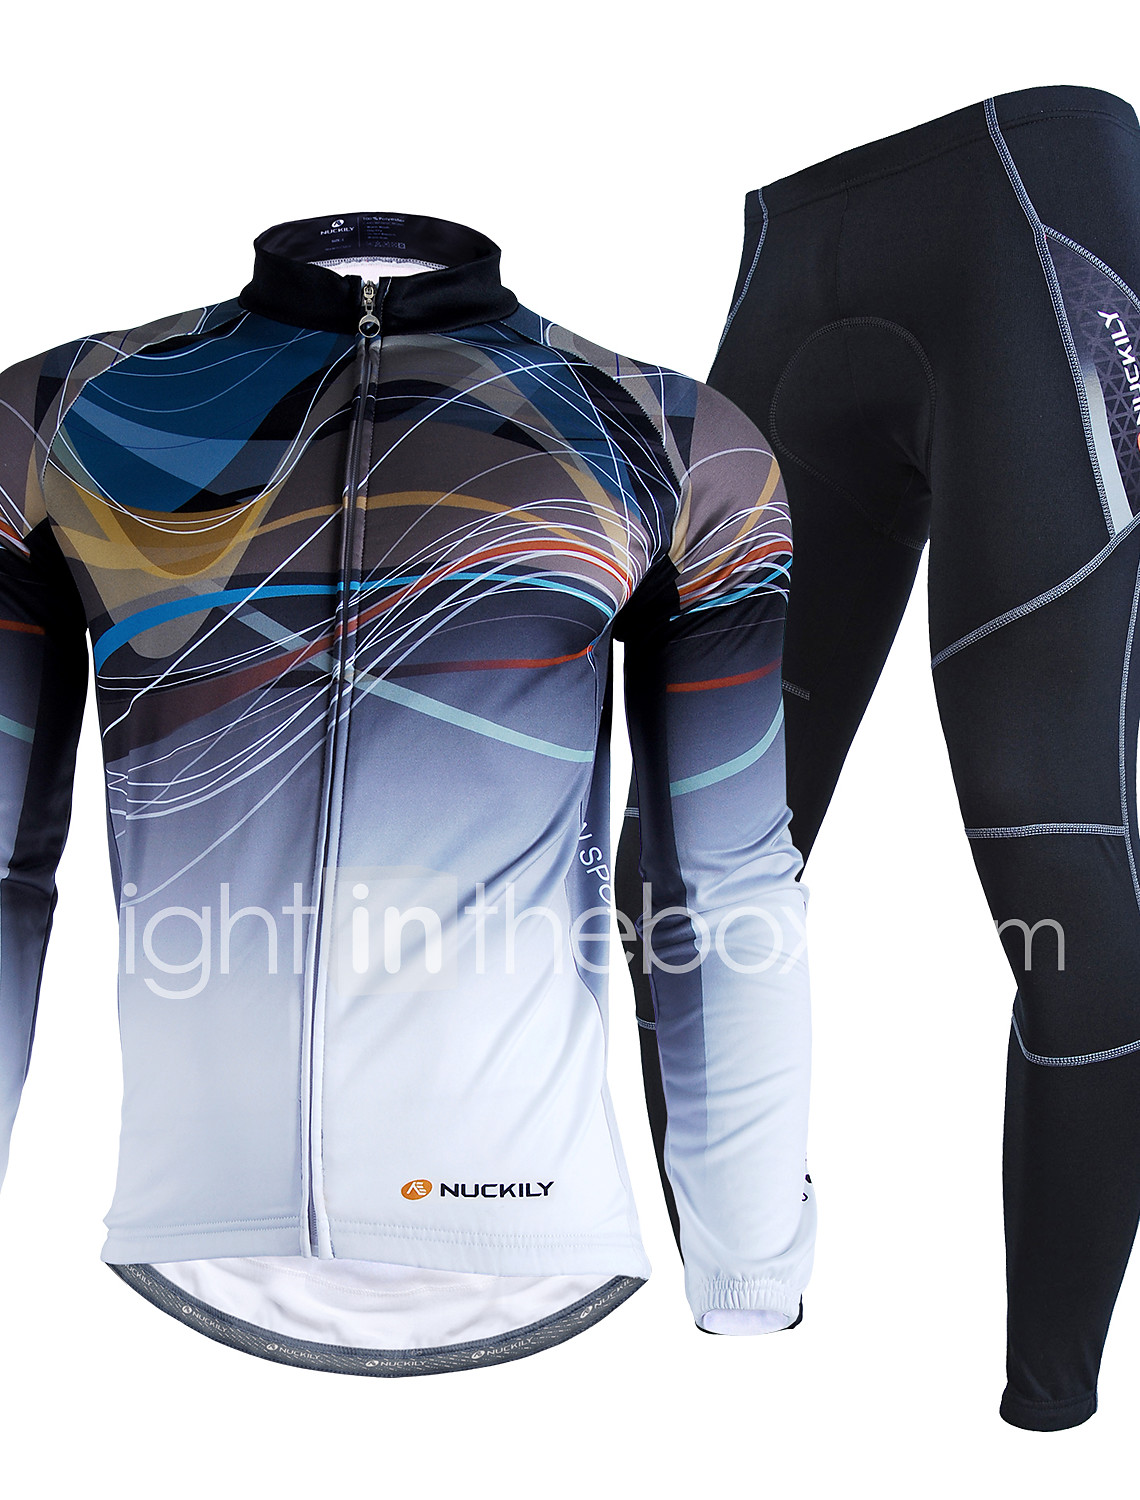 Nuckily Men s Long Sleeve Cycling Jersey with Tights - Camouflage Bike  Clothing Suit Waterproof Thermal   e8e1cbc34